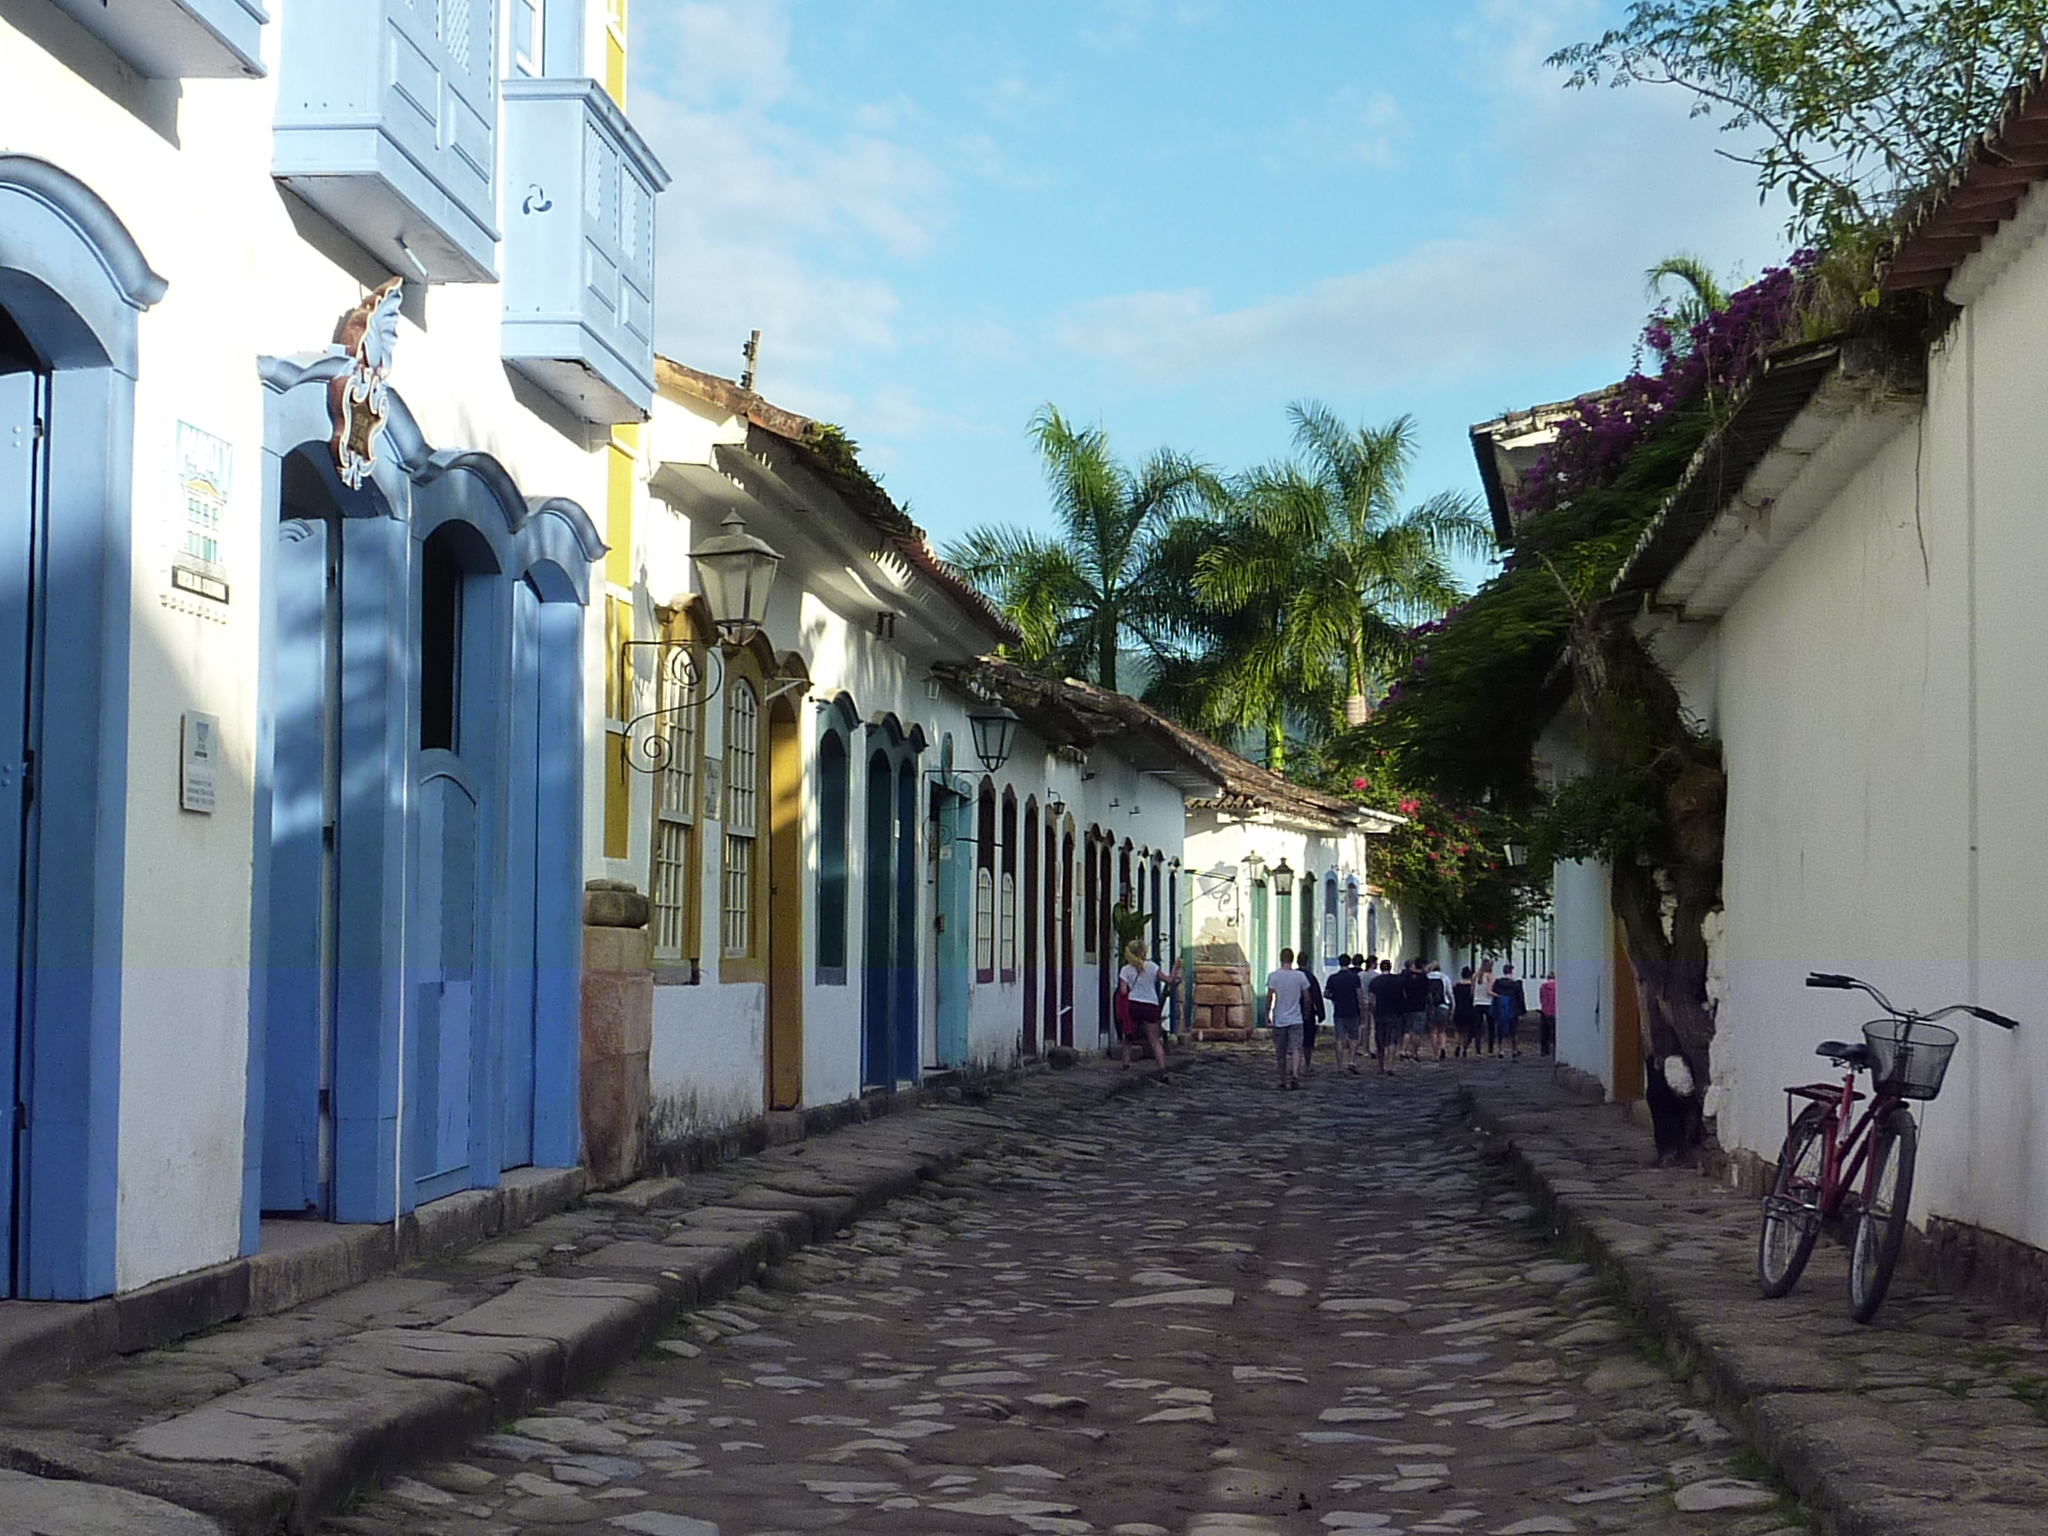 Paraty Brazil  city pictures gallery : Part 3: Paraty, Brazil | beam me up, biscotti!